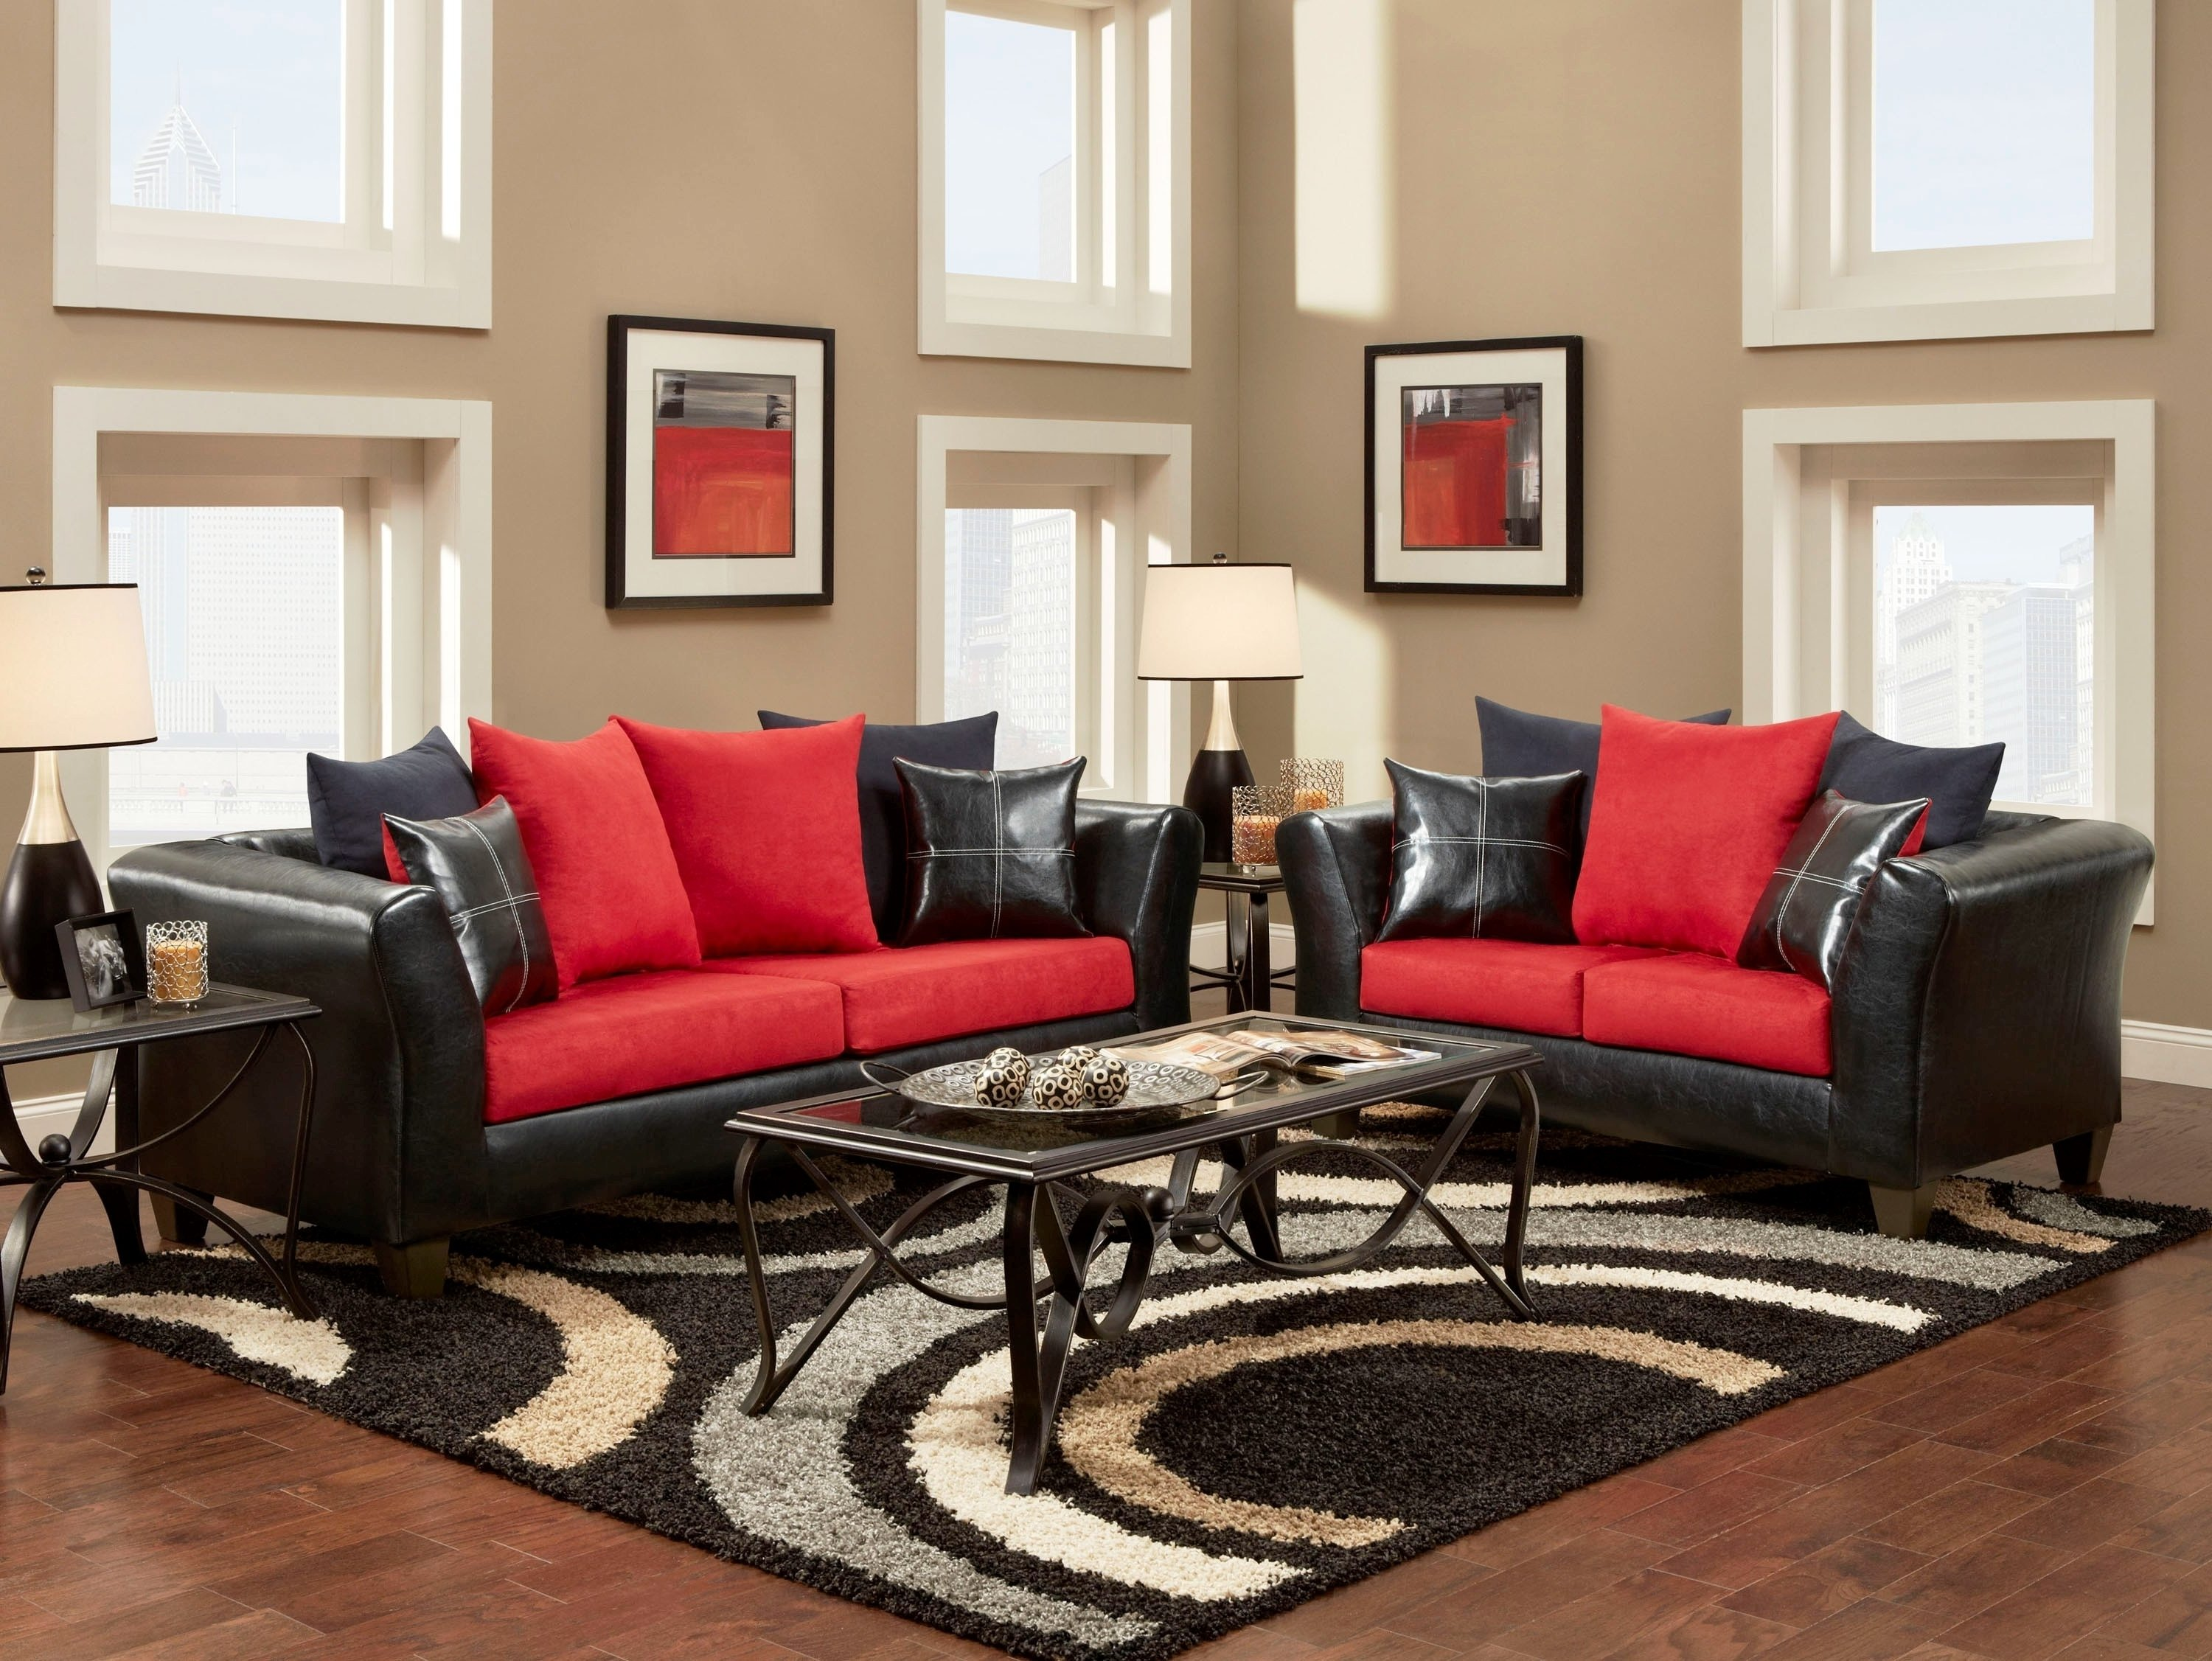 10 Beautiful Red And Black Living Room Ideas red and black living room ideas e280a2 living room design 2020